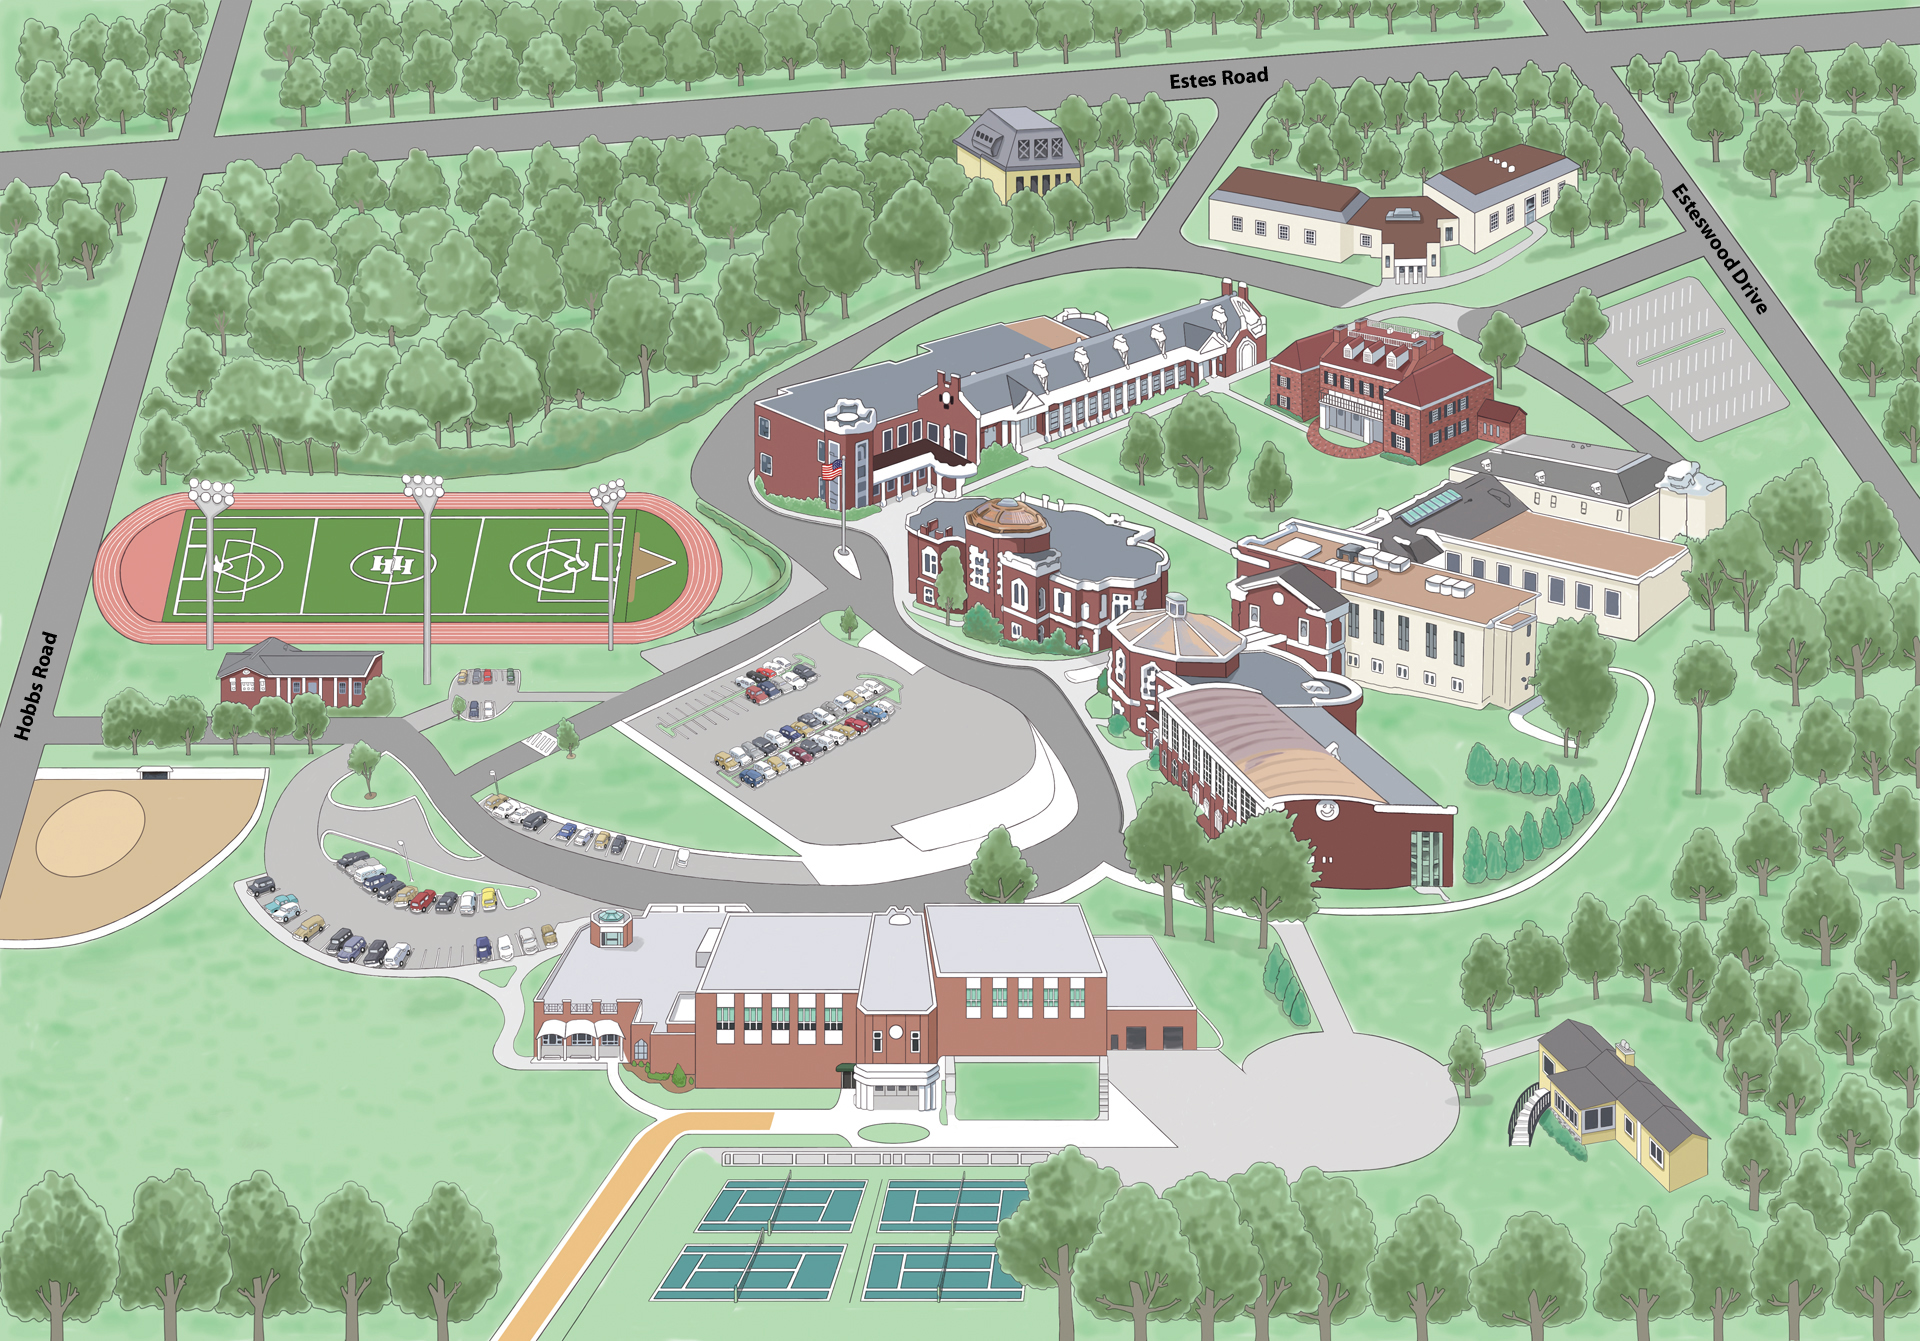 Campus Map - Harpeth Hall School